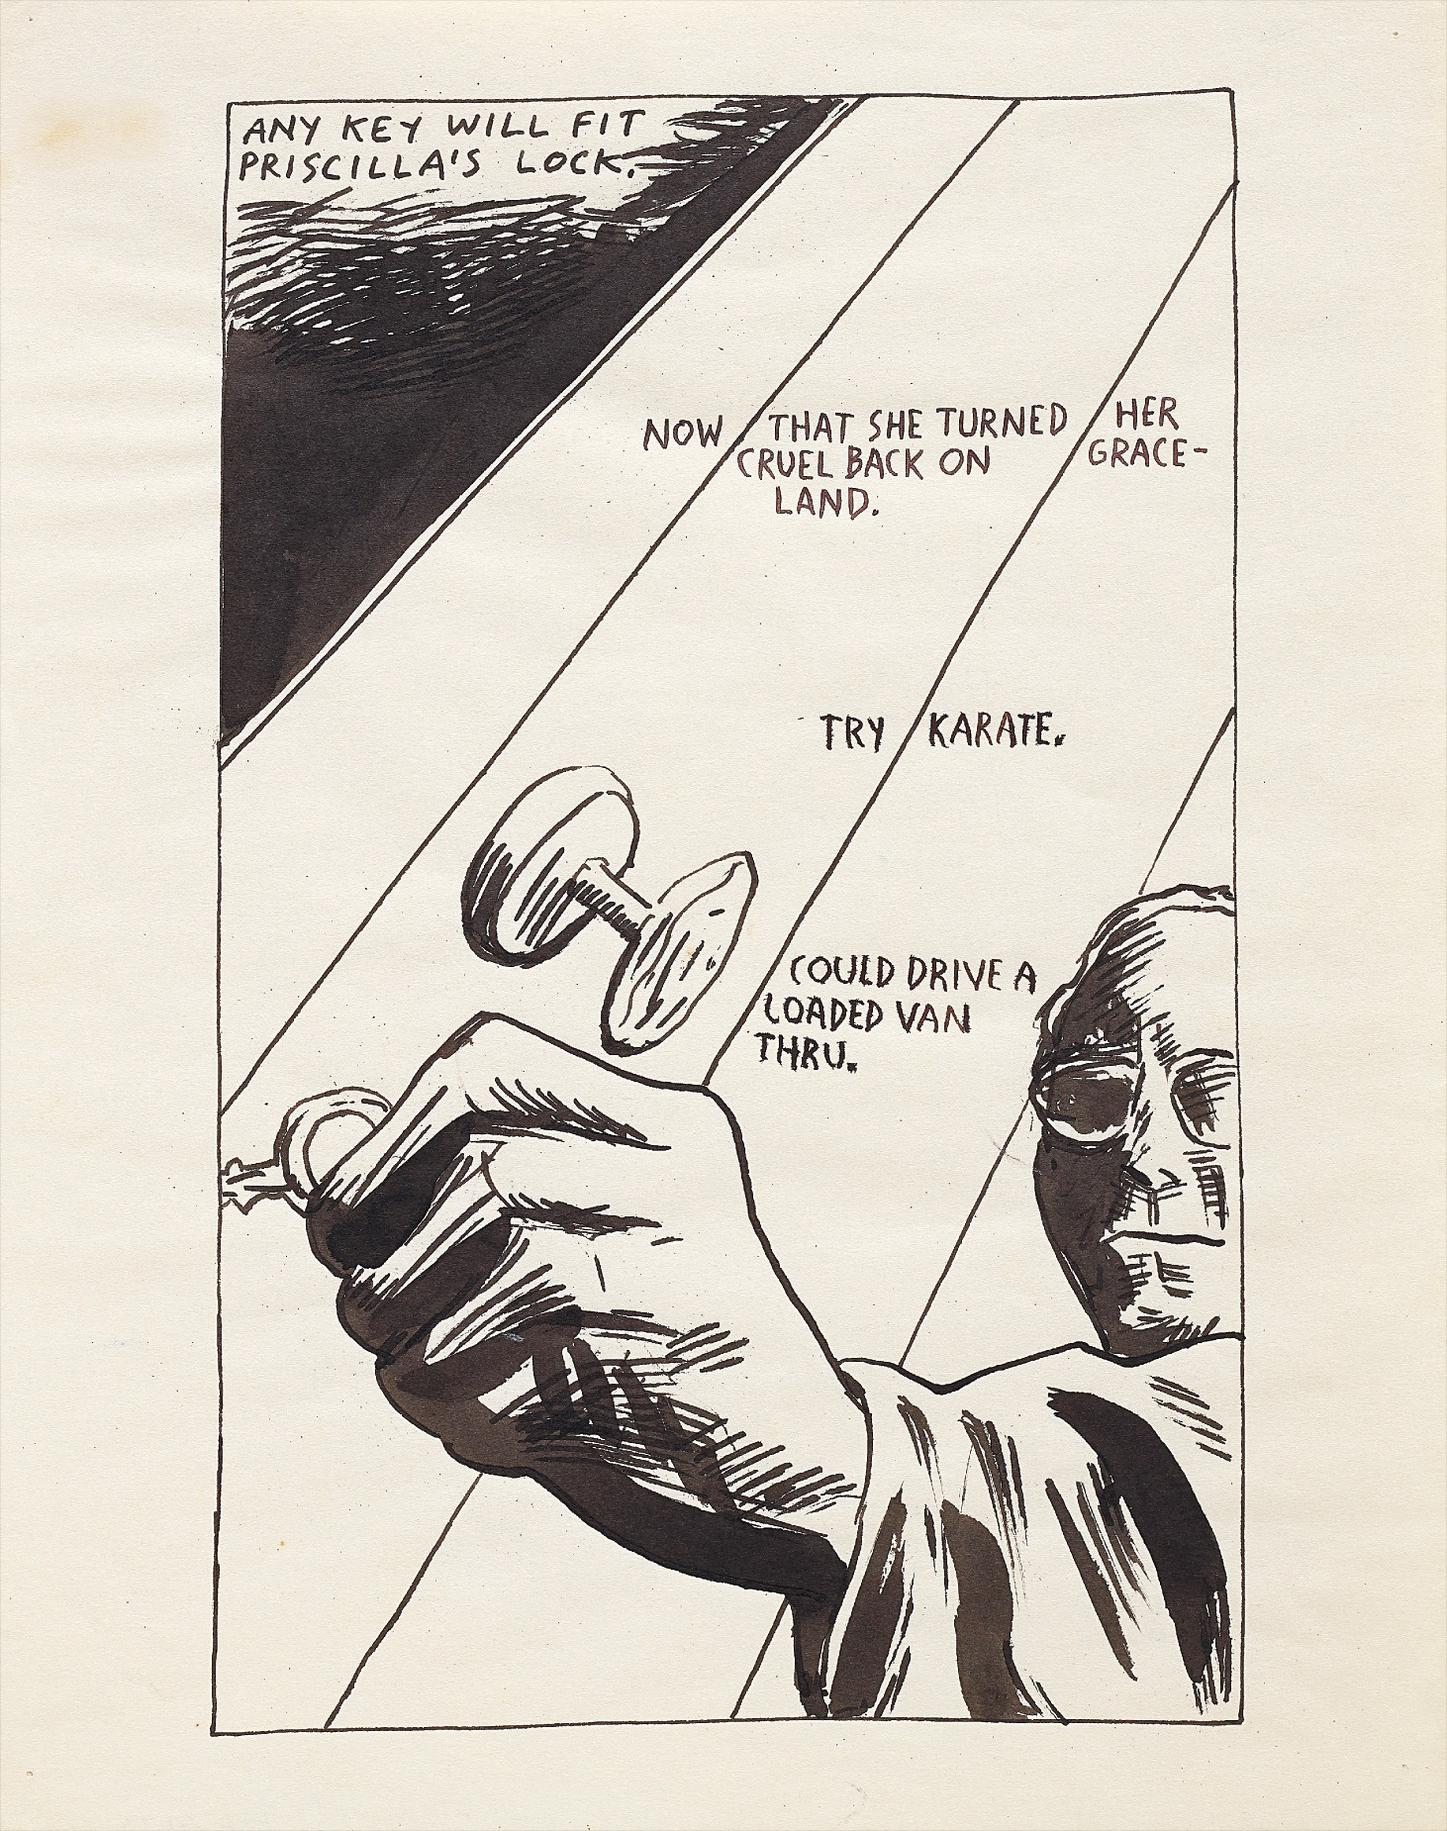 Raymond Pettibon-No Title (Any Key Will Fit Priscillas Lock)-1986